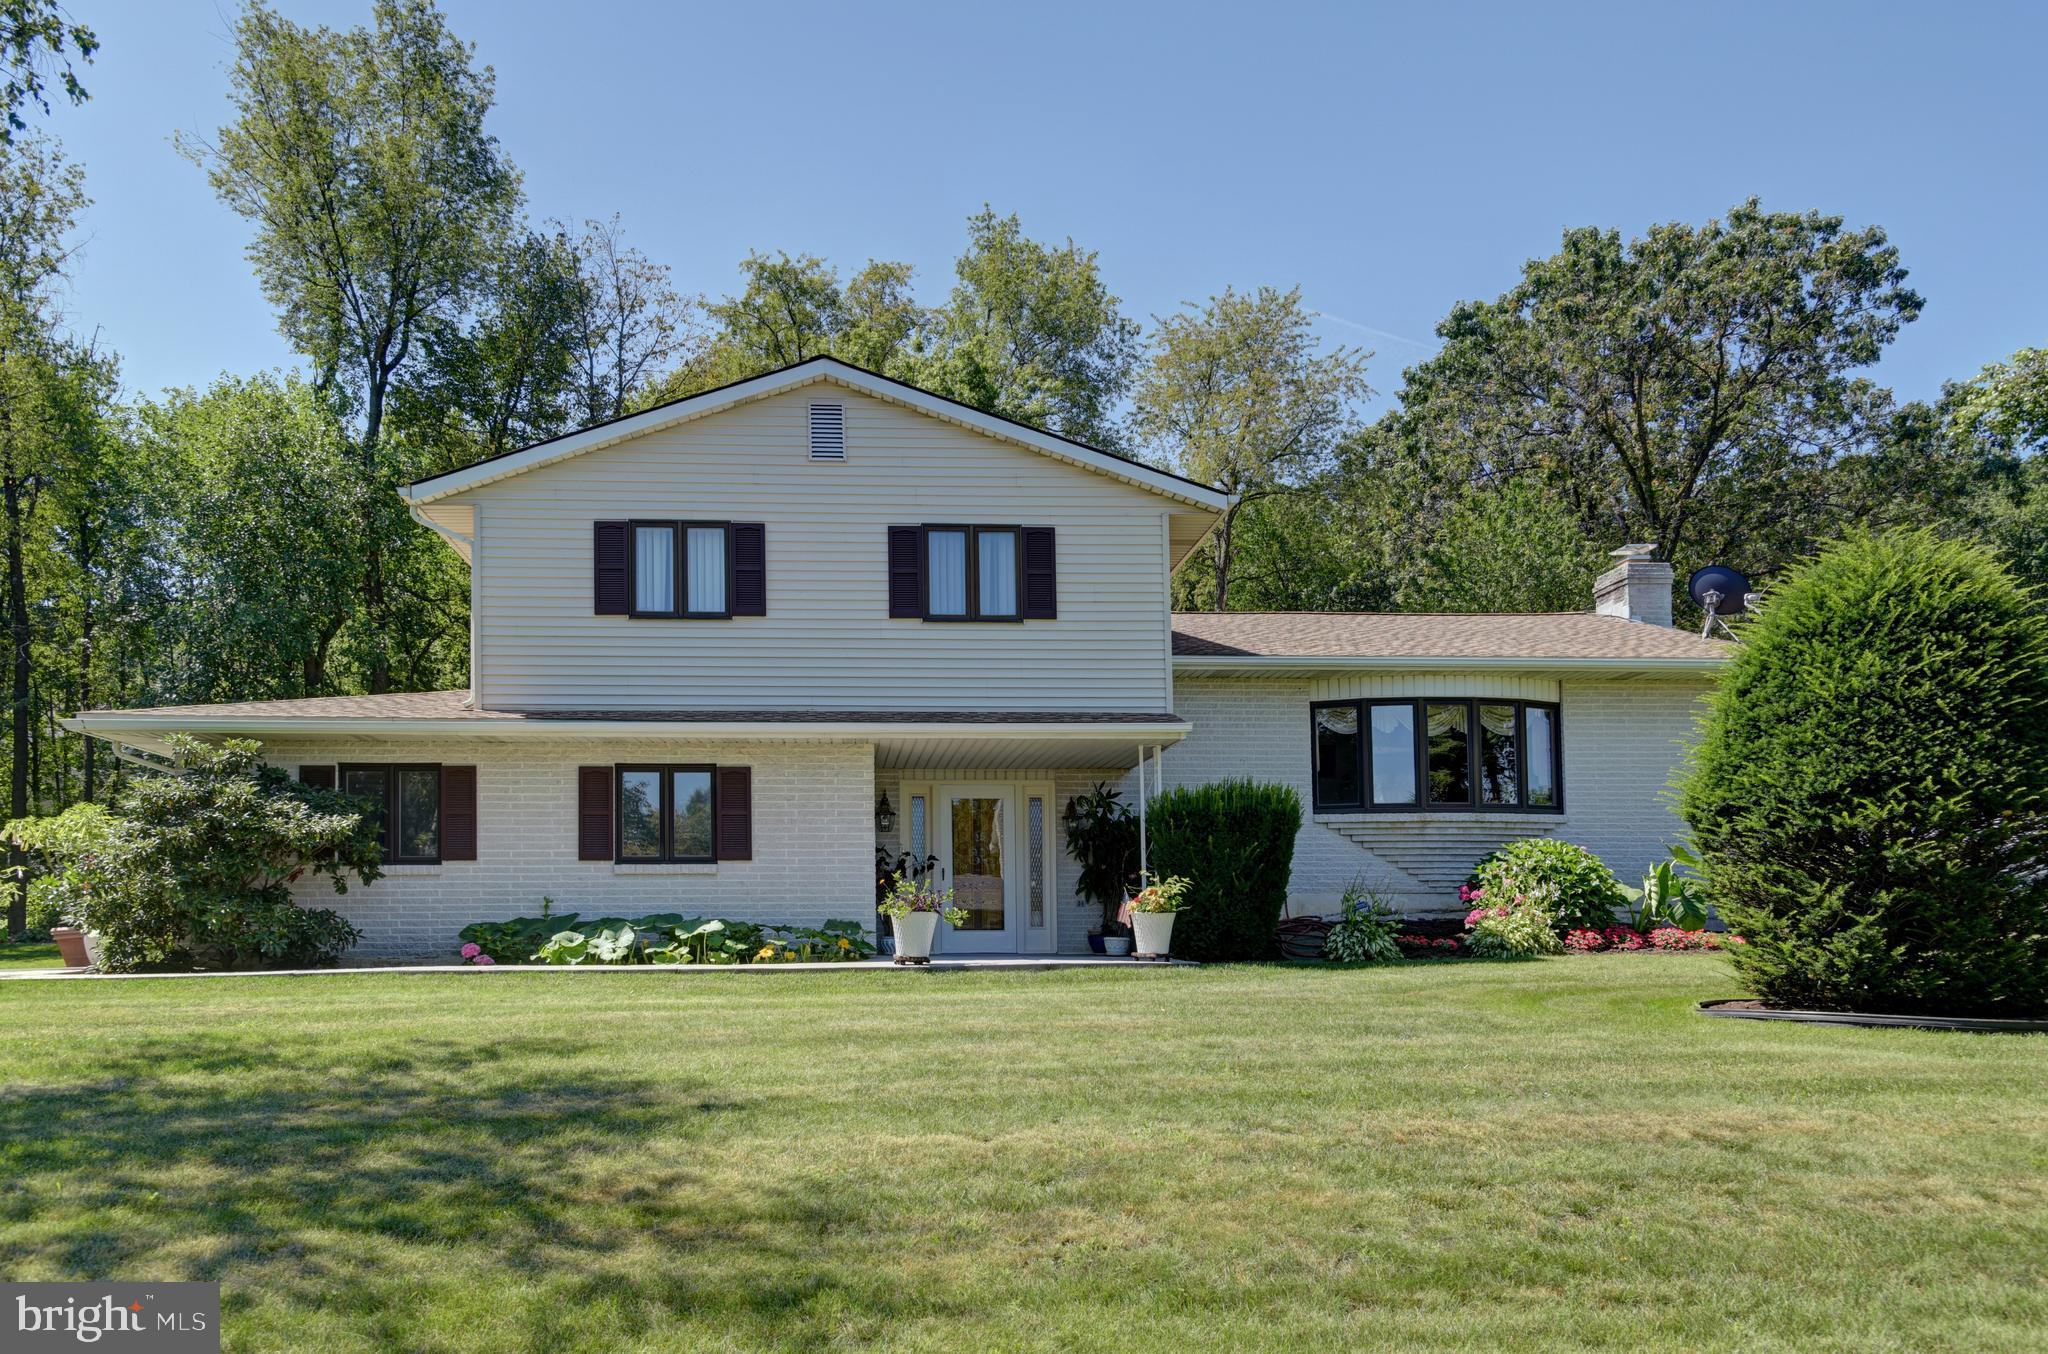 5566 JARED ROAD, CENTER VALLEY, PA 18034